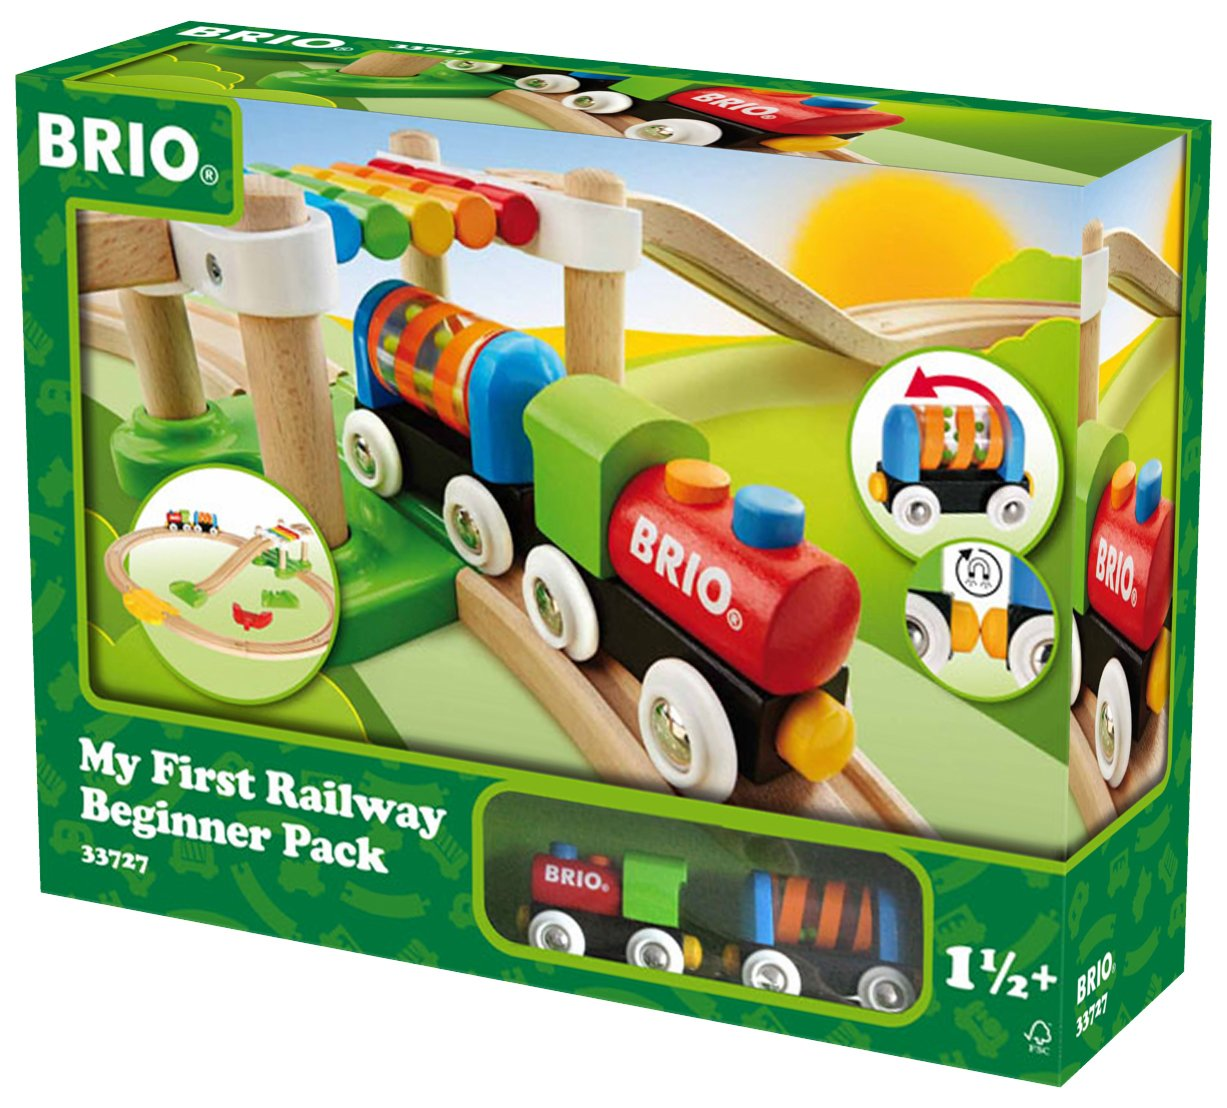 BRIO My First Railway Beginner Train Set